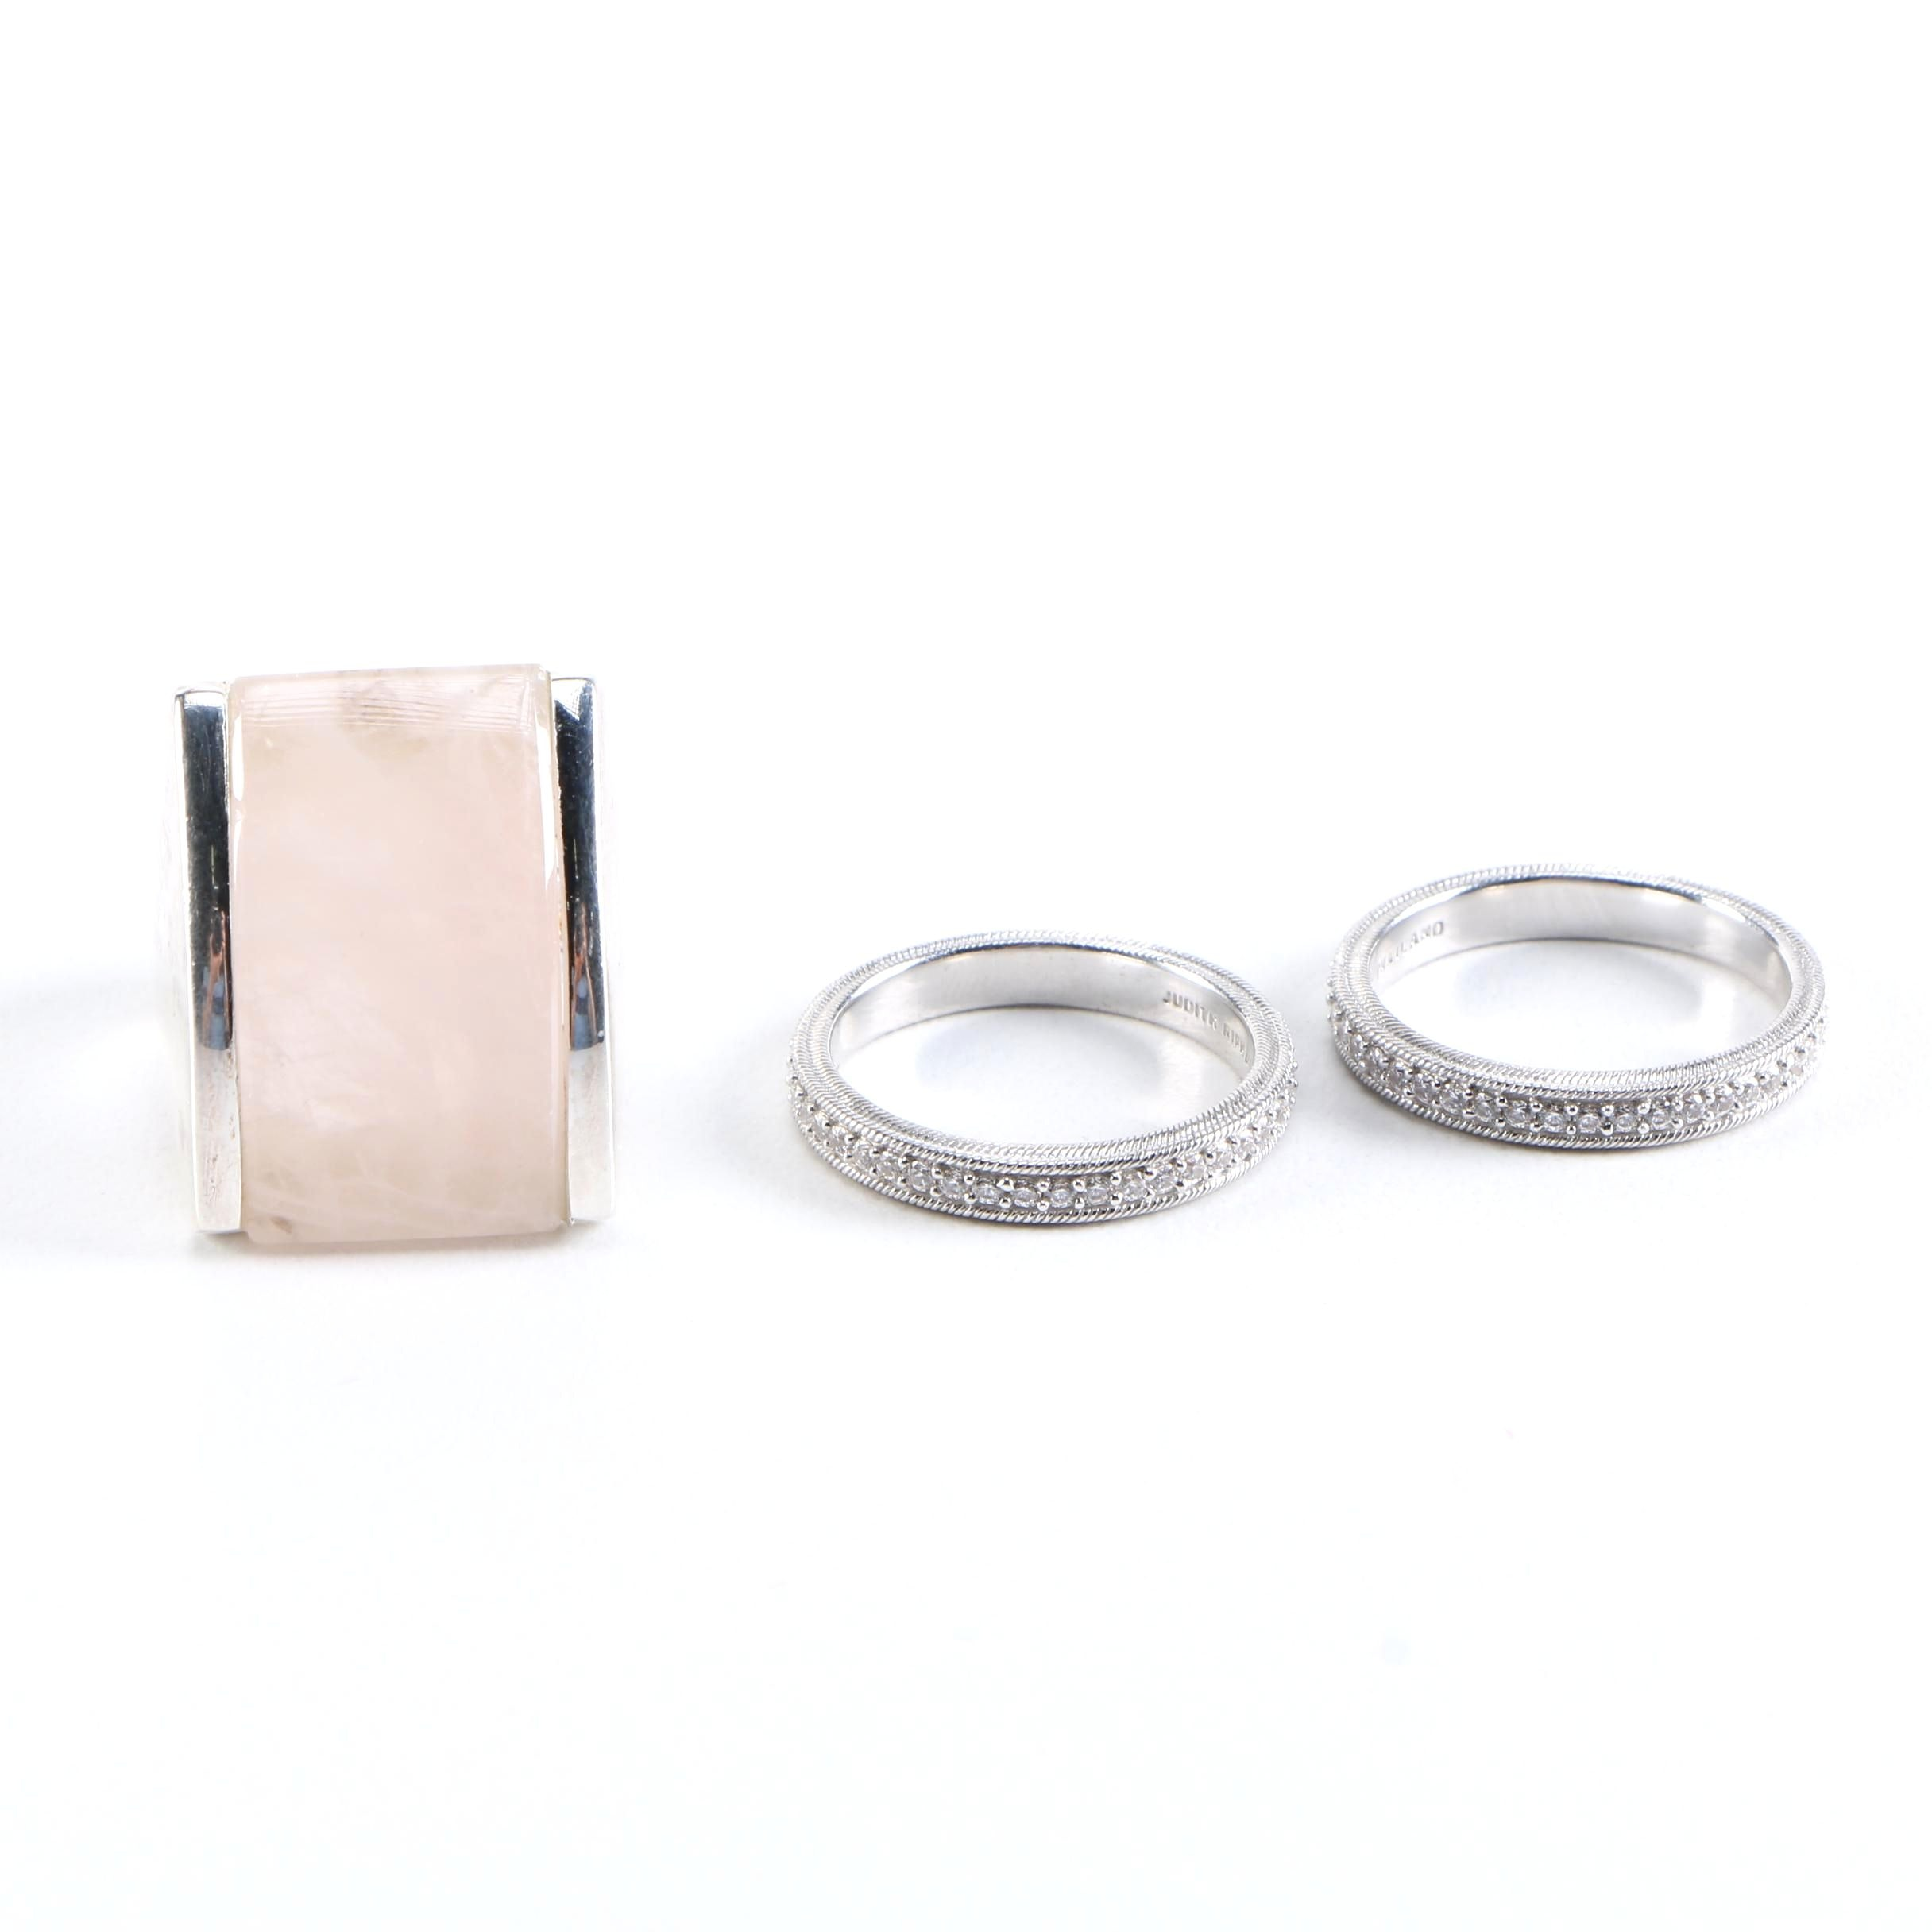 Sterling Silver Rose Quartz and Cubic Zirconia Rings Featuring Judith Ripka